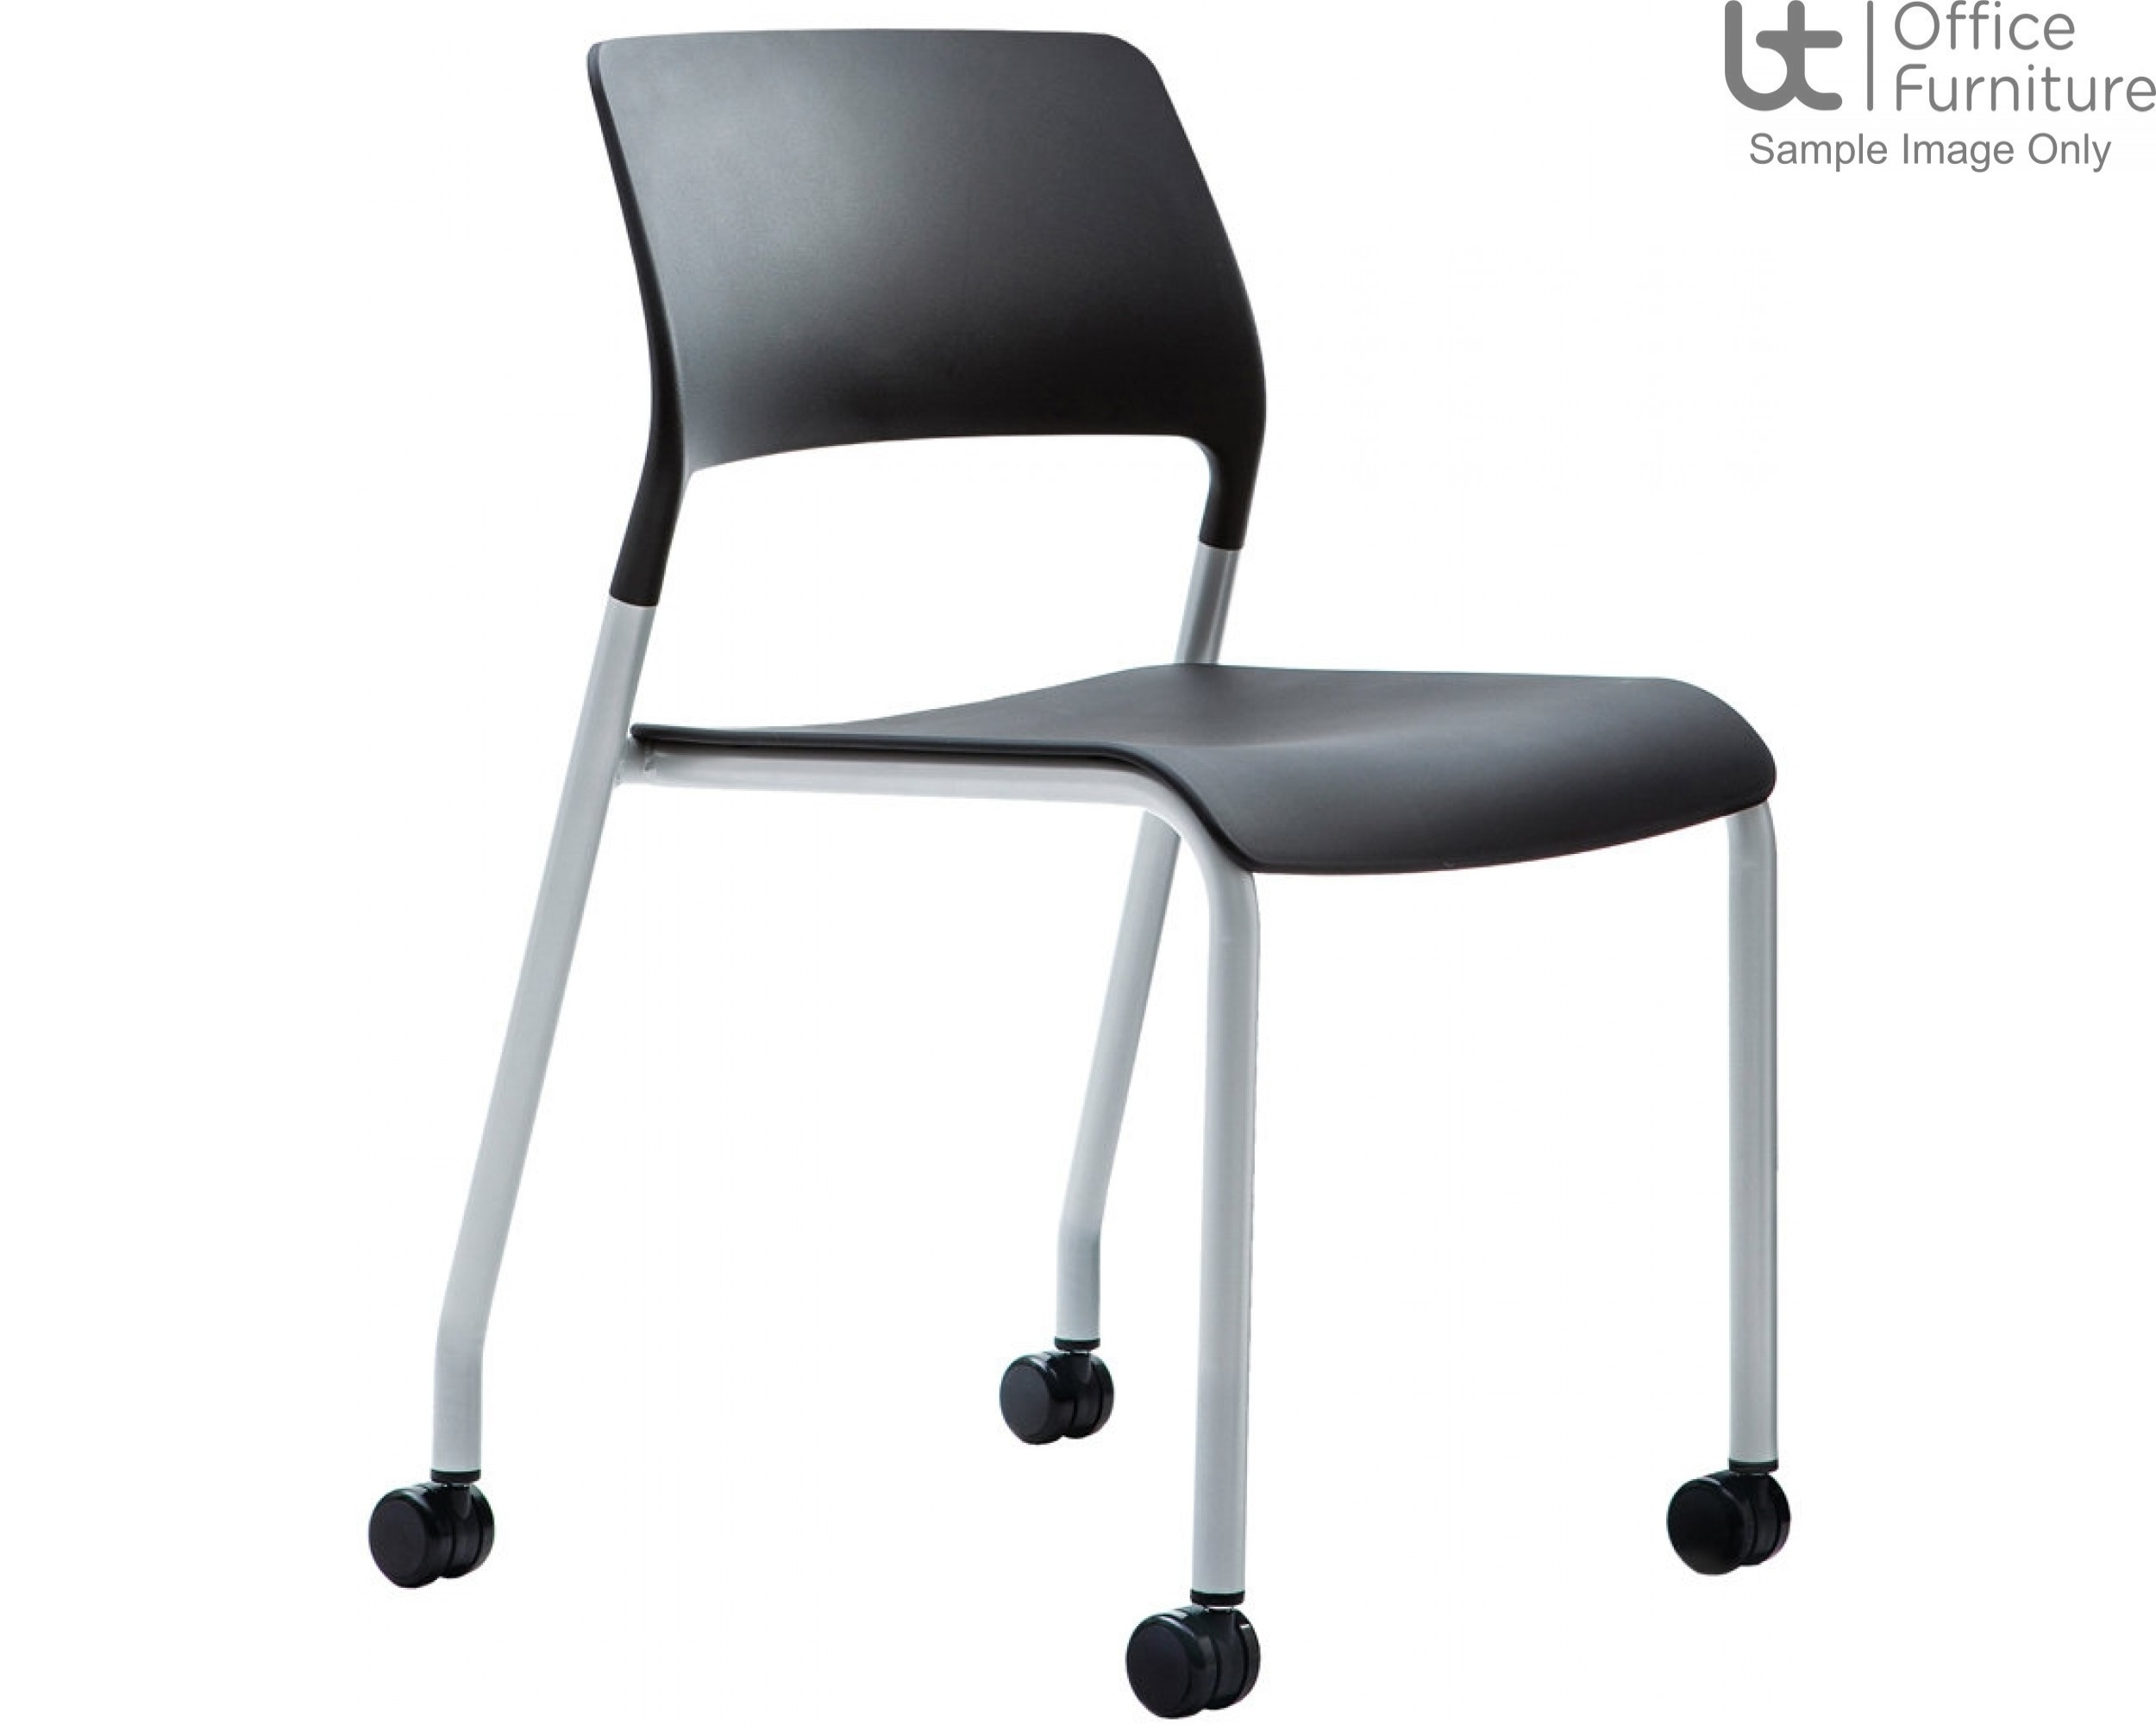 Verco Visitor / Conference Seating - Muse 4 legged Black Plastic Stacking Chair on Castors